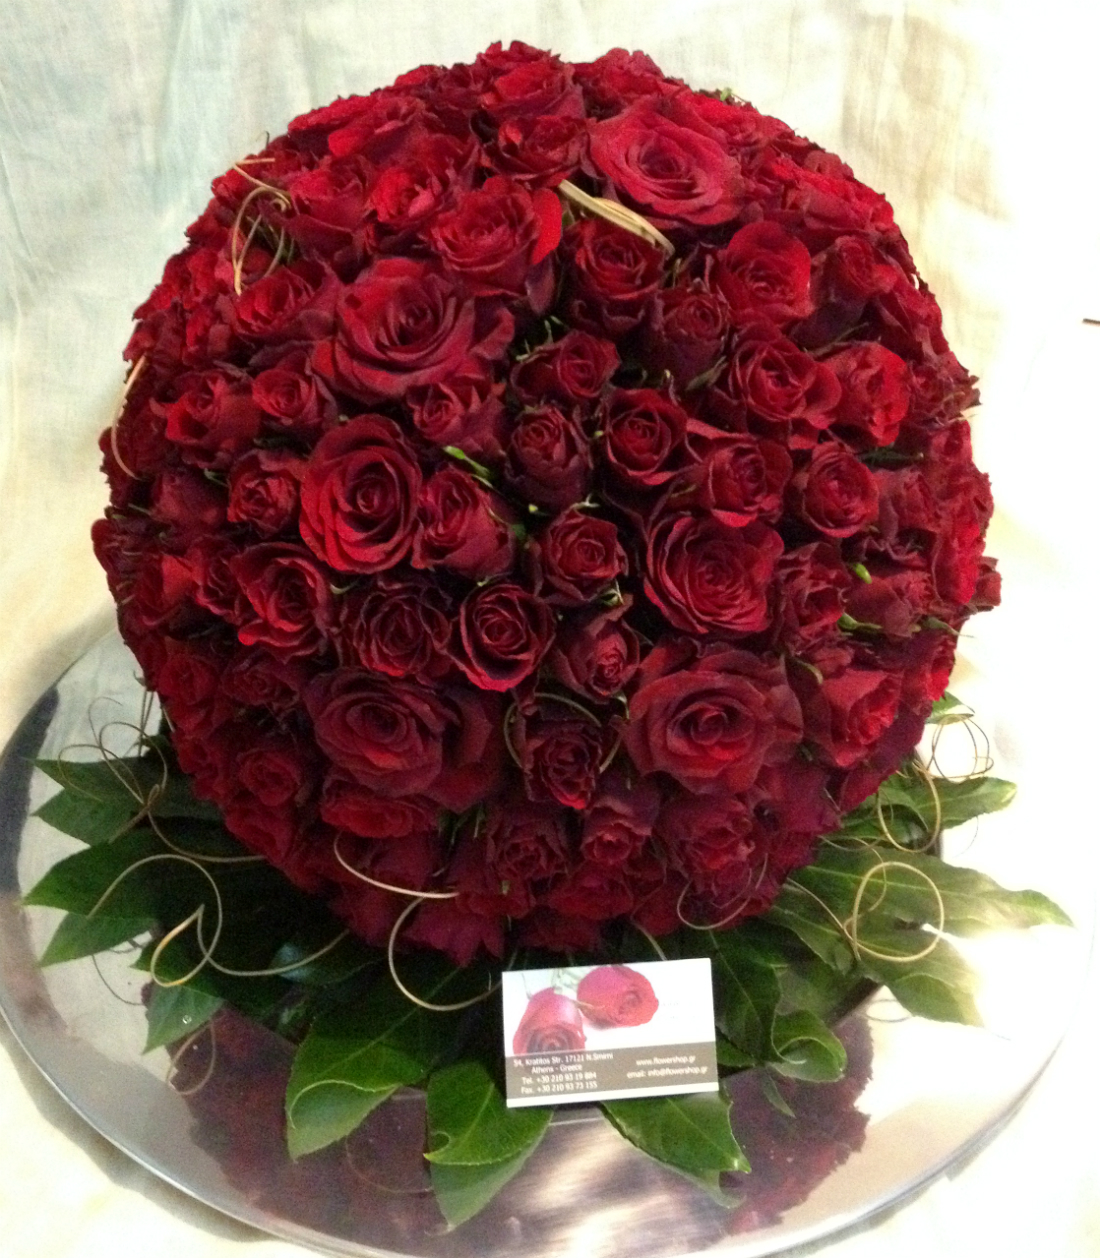 Red roses League  XLarge Red Roses Ball  250 Heads  Exclusive  tray diam60cm And ball diam 45cm